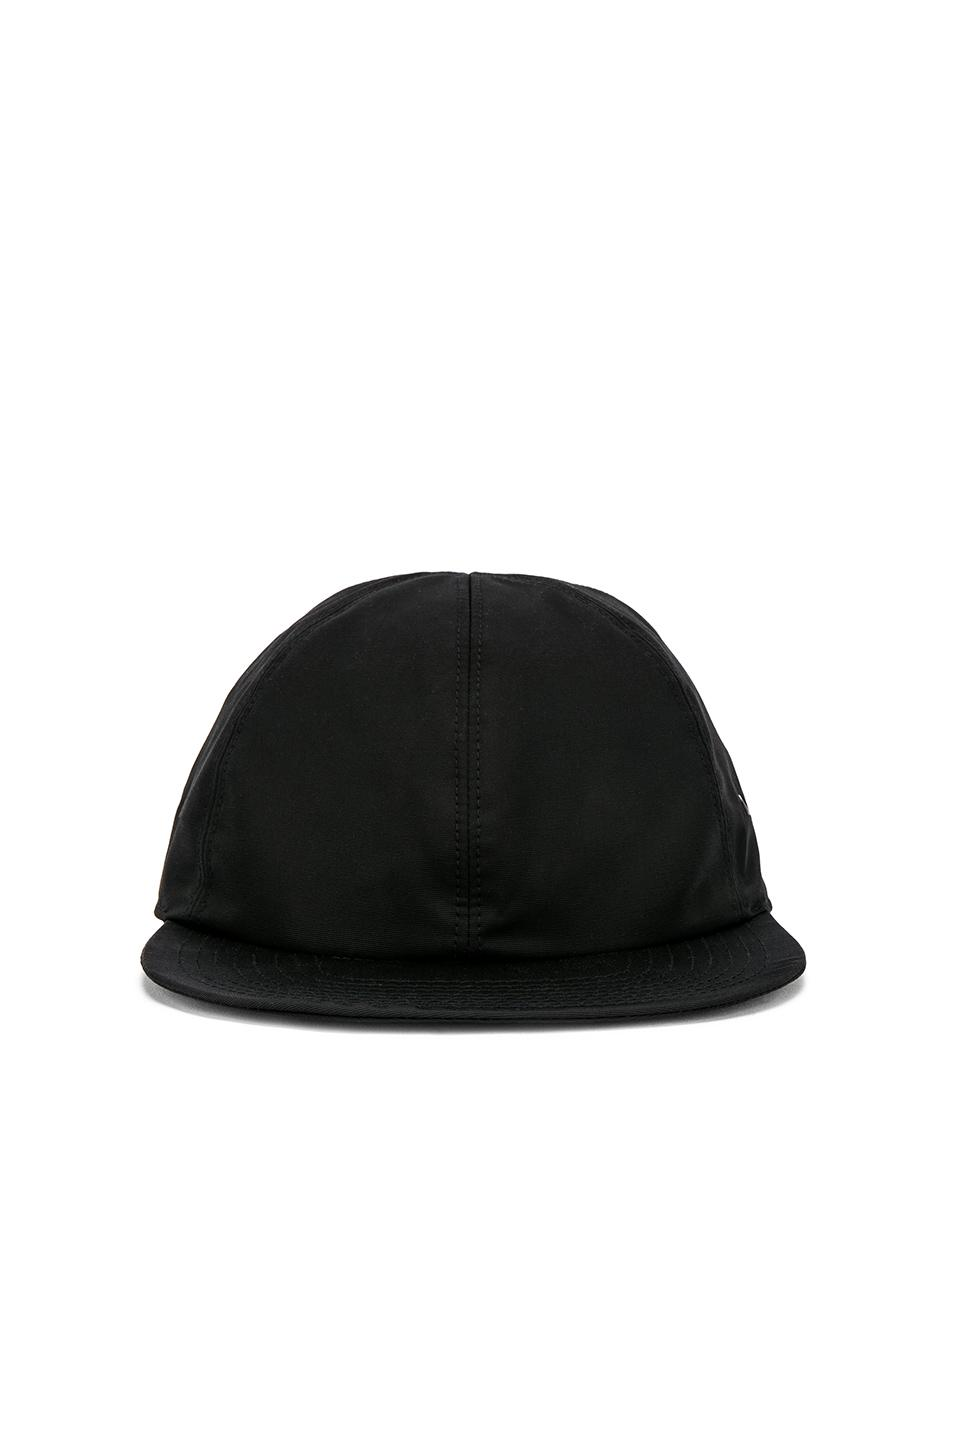 7e08fa2b3 1017 ALYX 9SM Baseball Cap With Buckle in Black for Men - Lyst